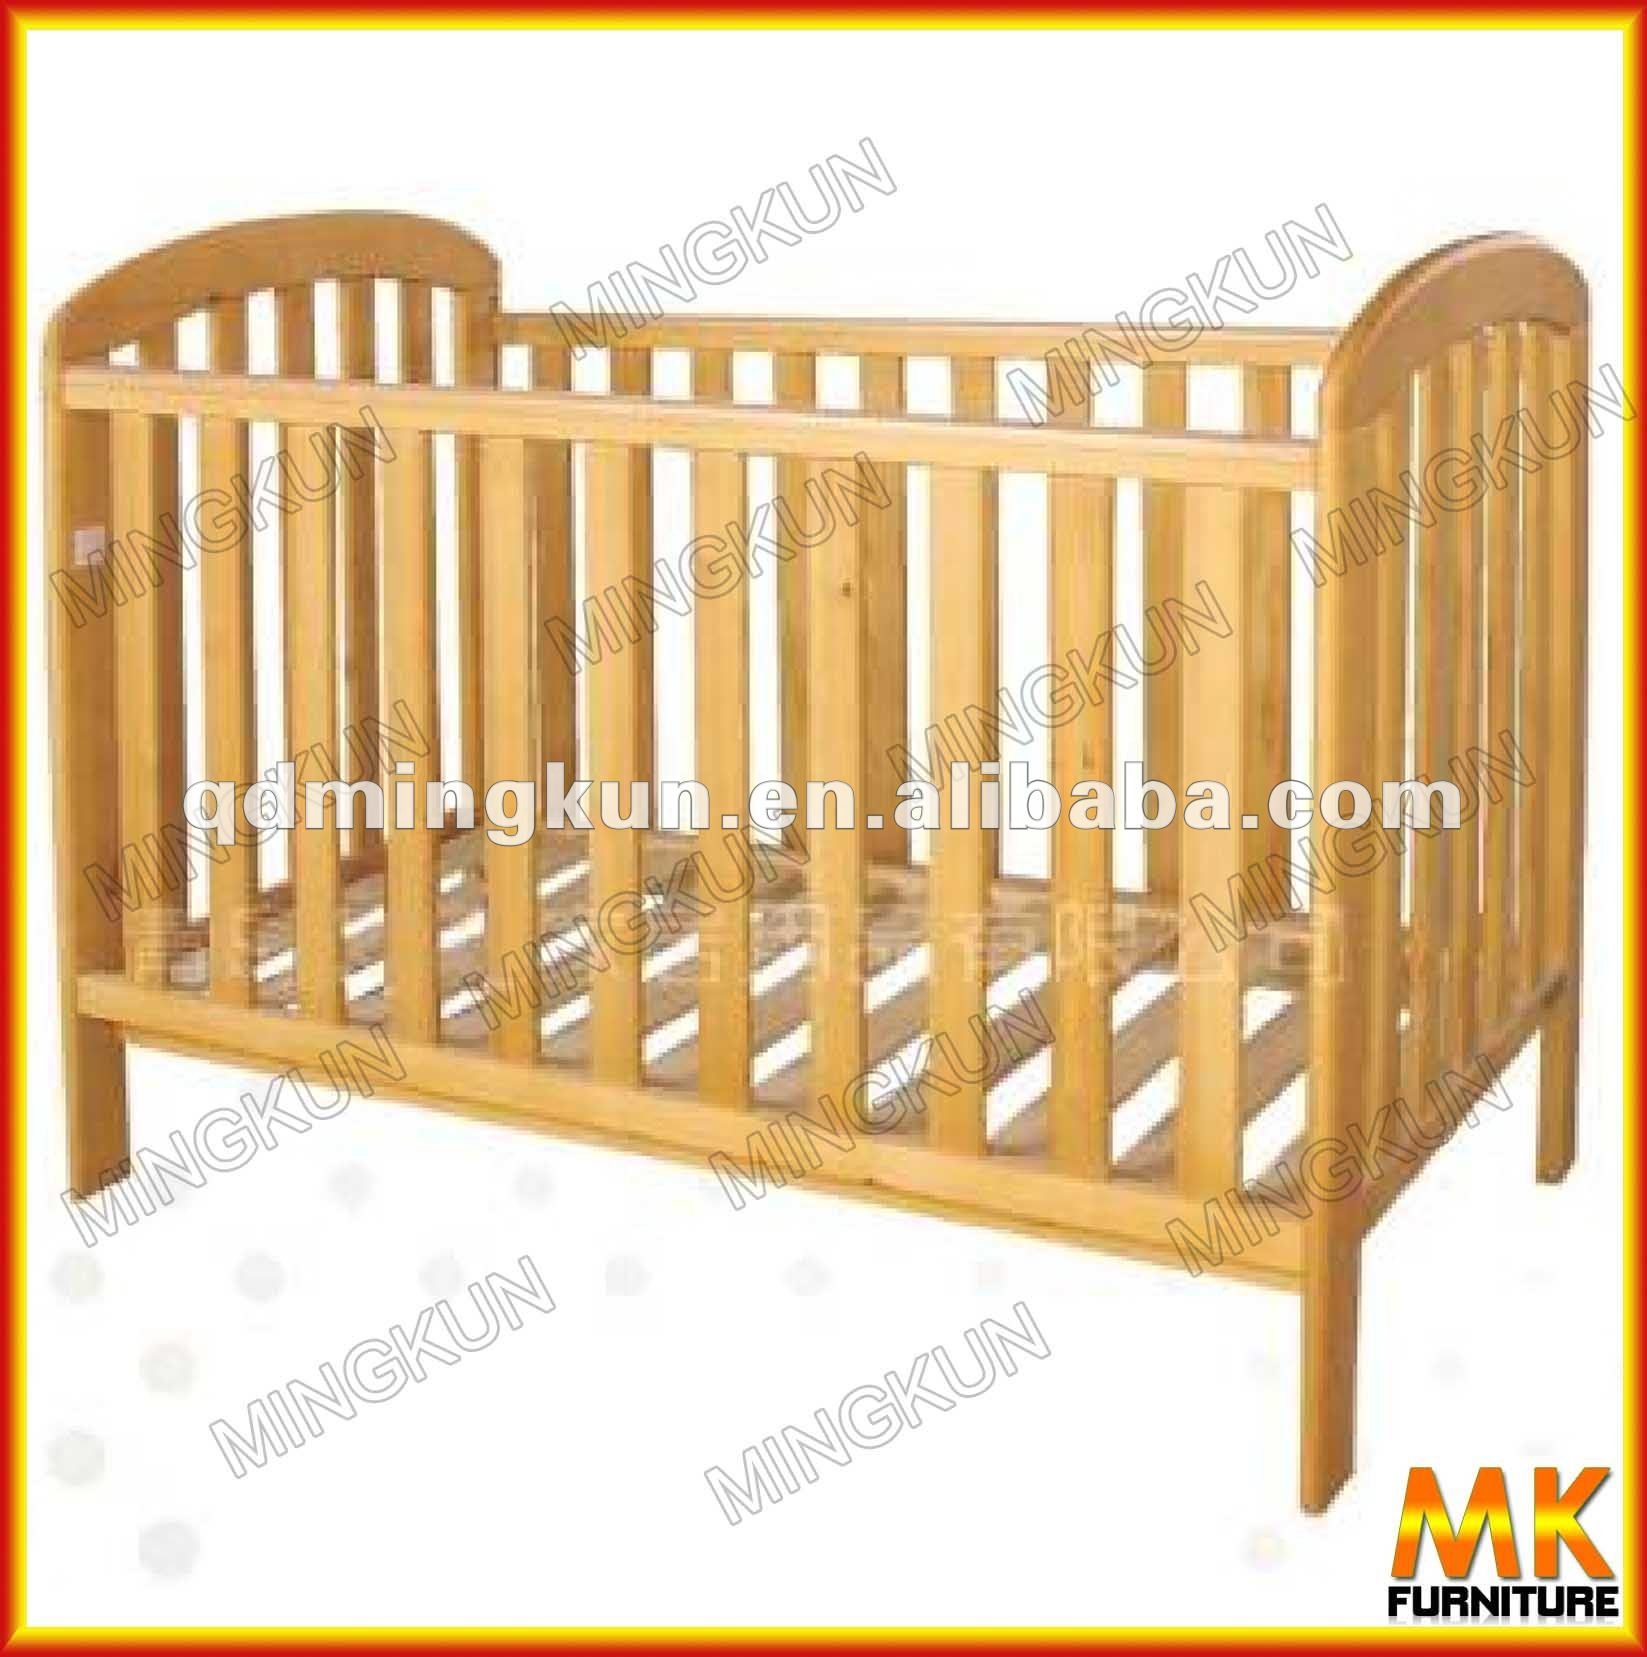 Baby cribs unfinished wood - Natural Pine Wood Baby Crib Natural Pine Wood Baby Crib Suppliers And Manufacturers At Alibaba Com